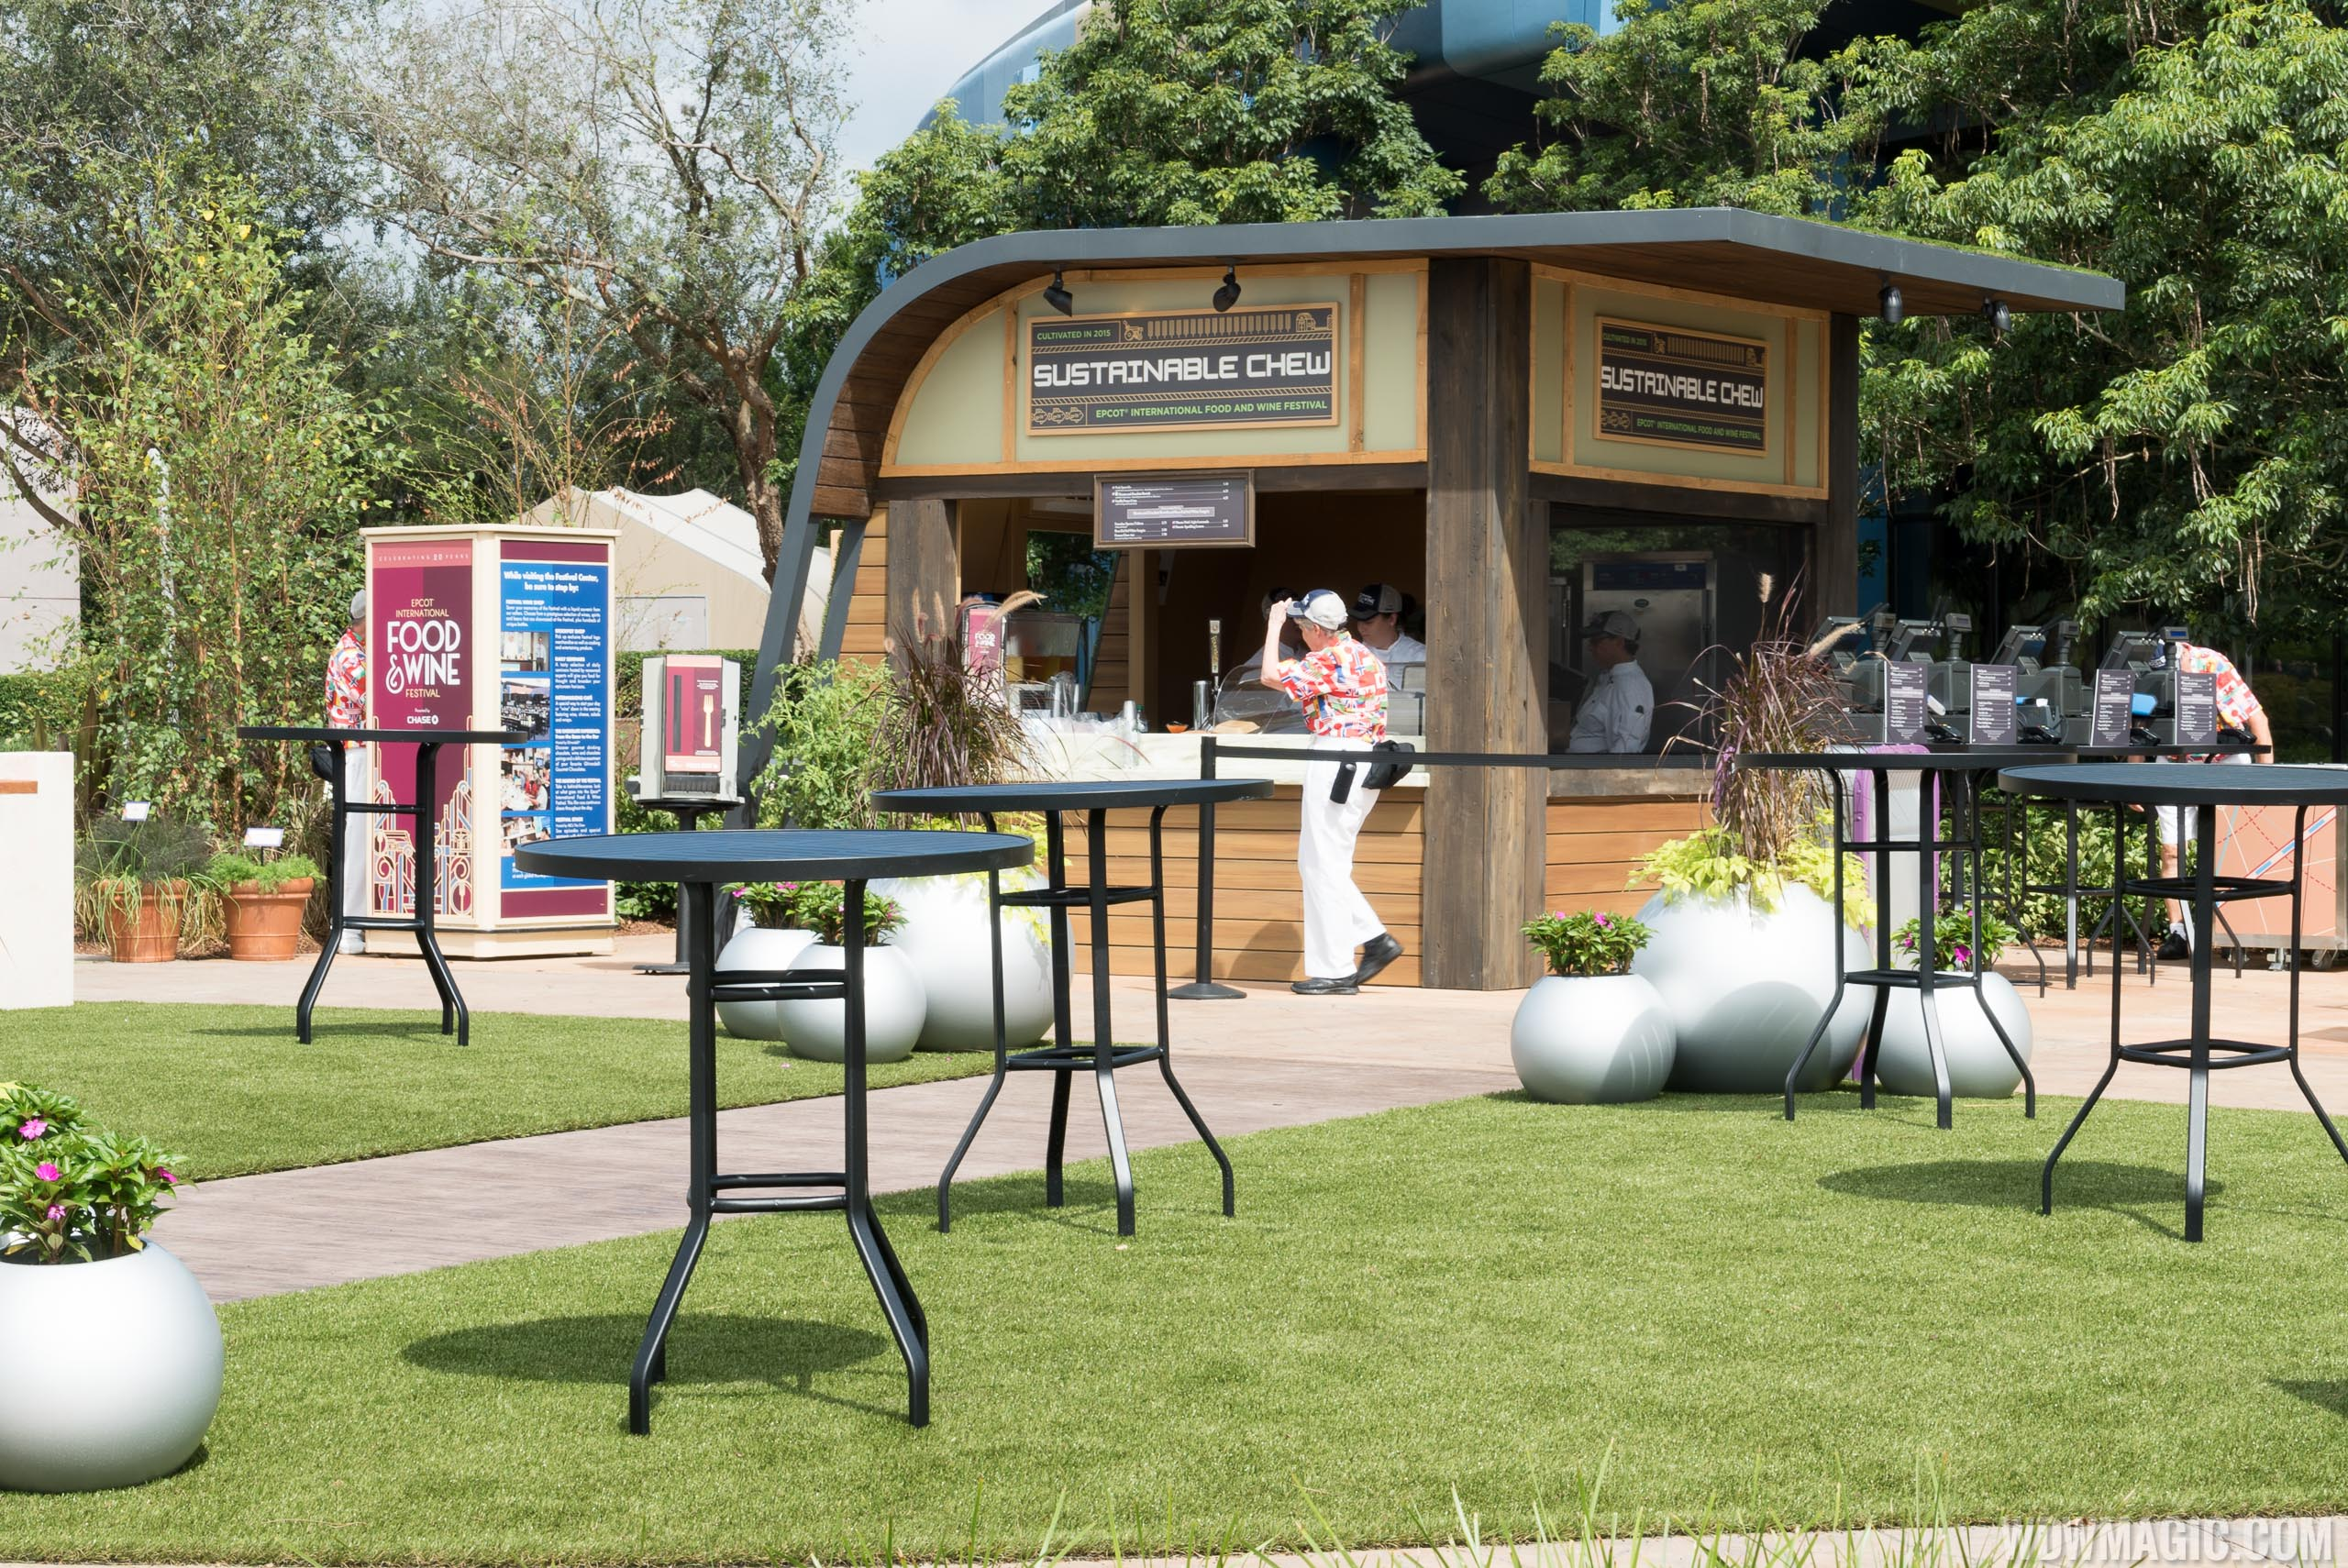 2015 Epcot Food and Wine Festival Marketplace kiosk - Sustainable Chew